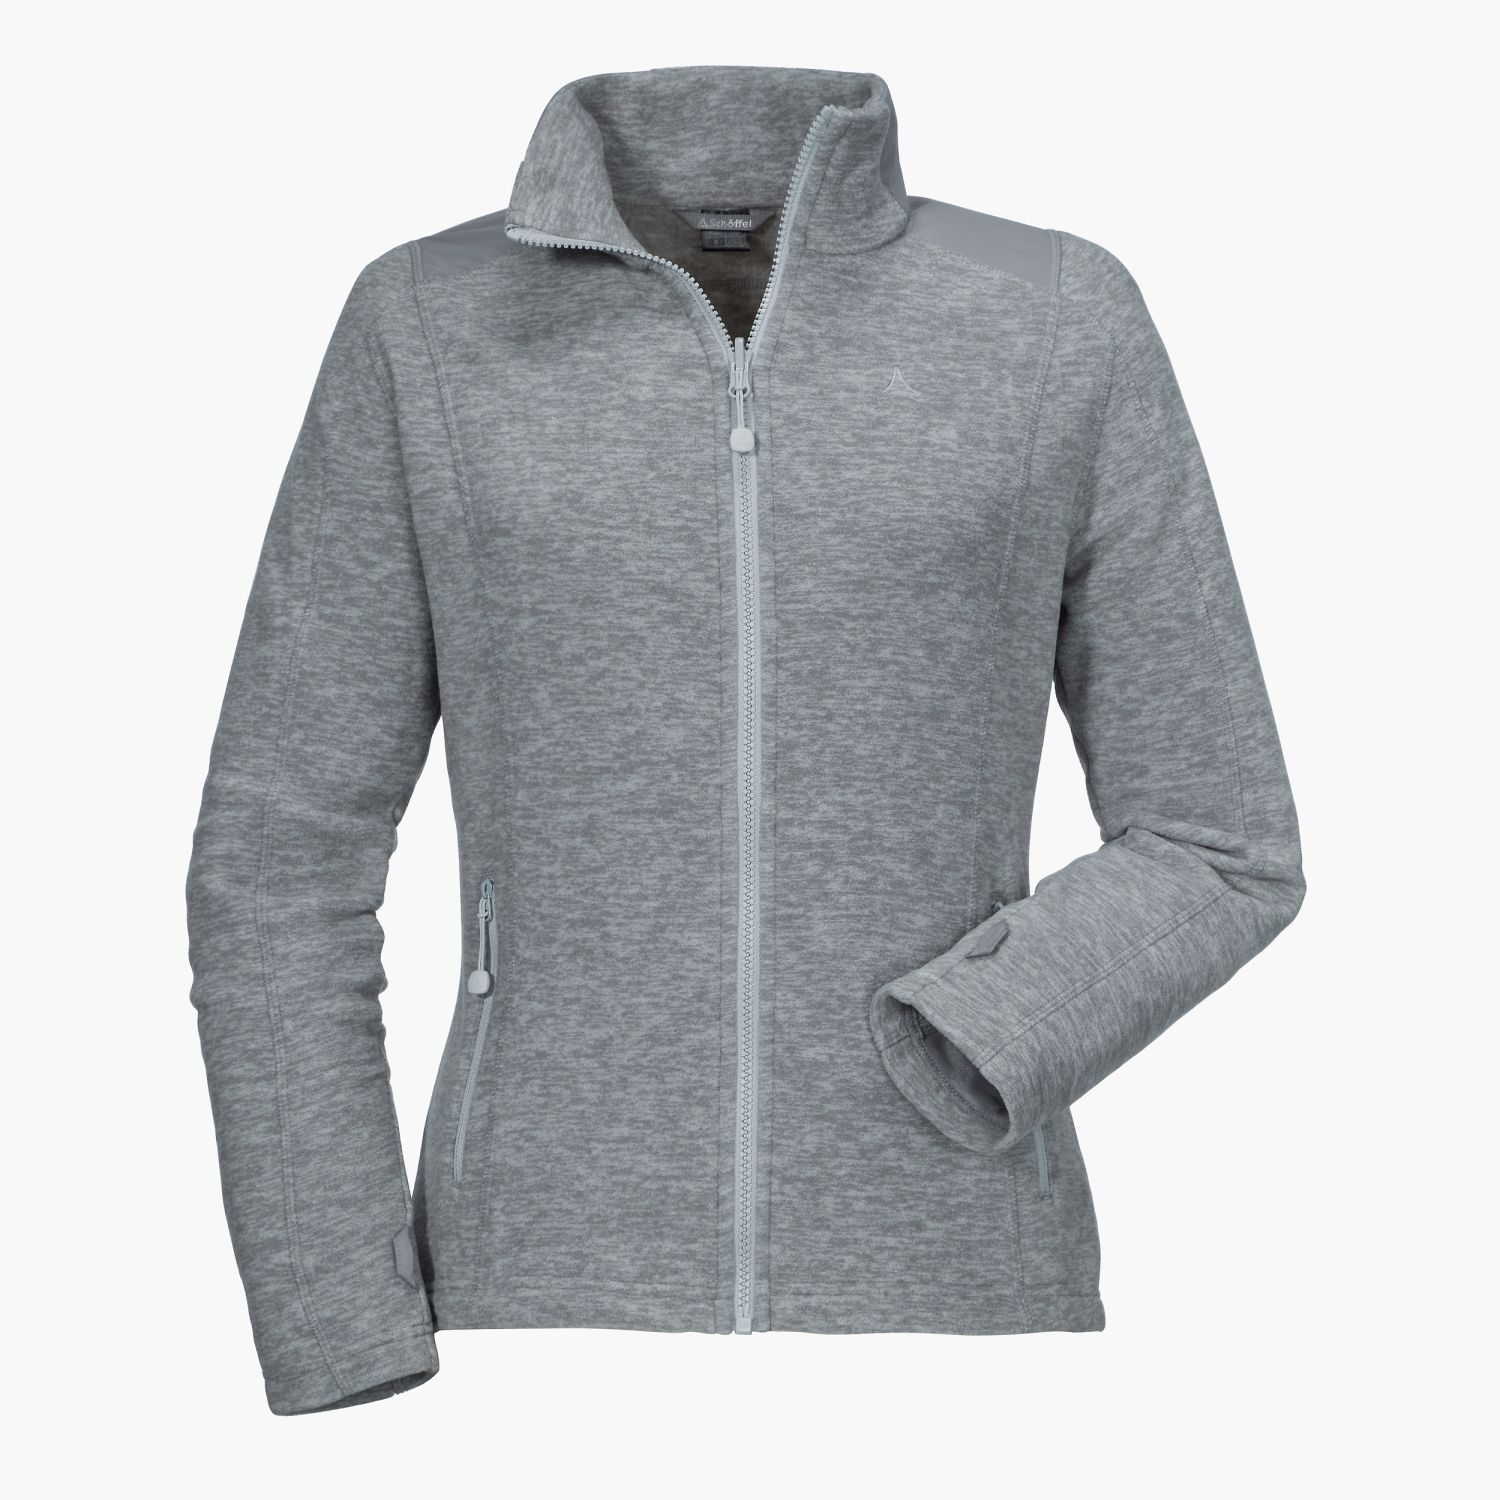 ZipIn! Fleece Alyeska1